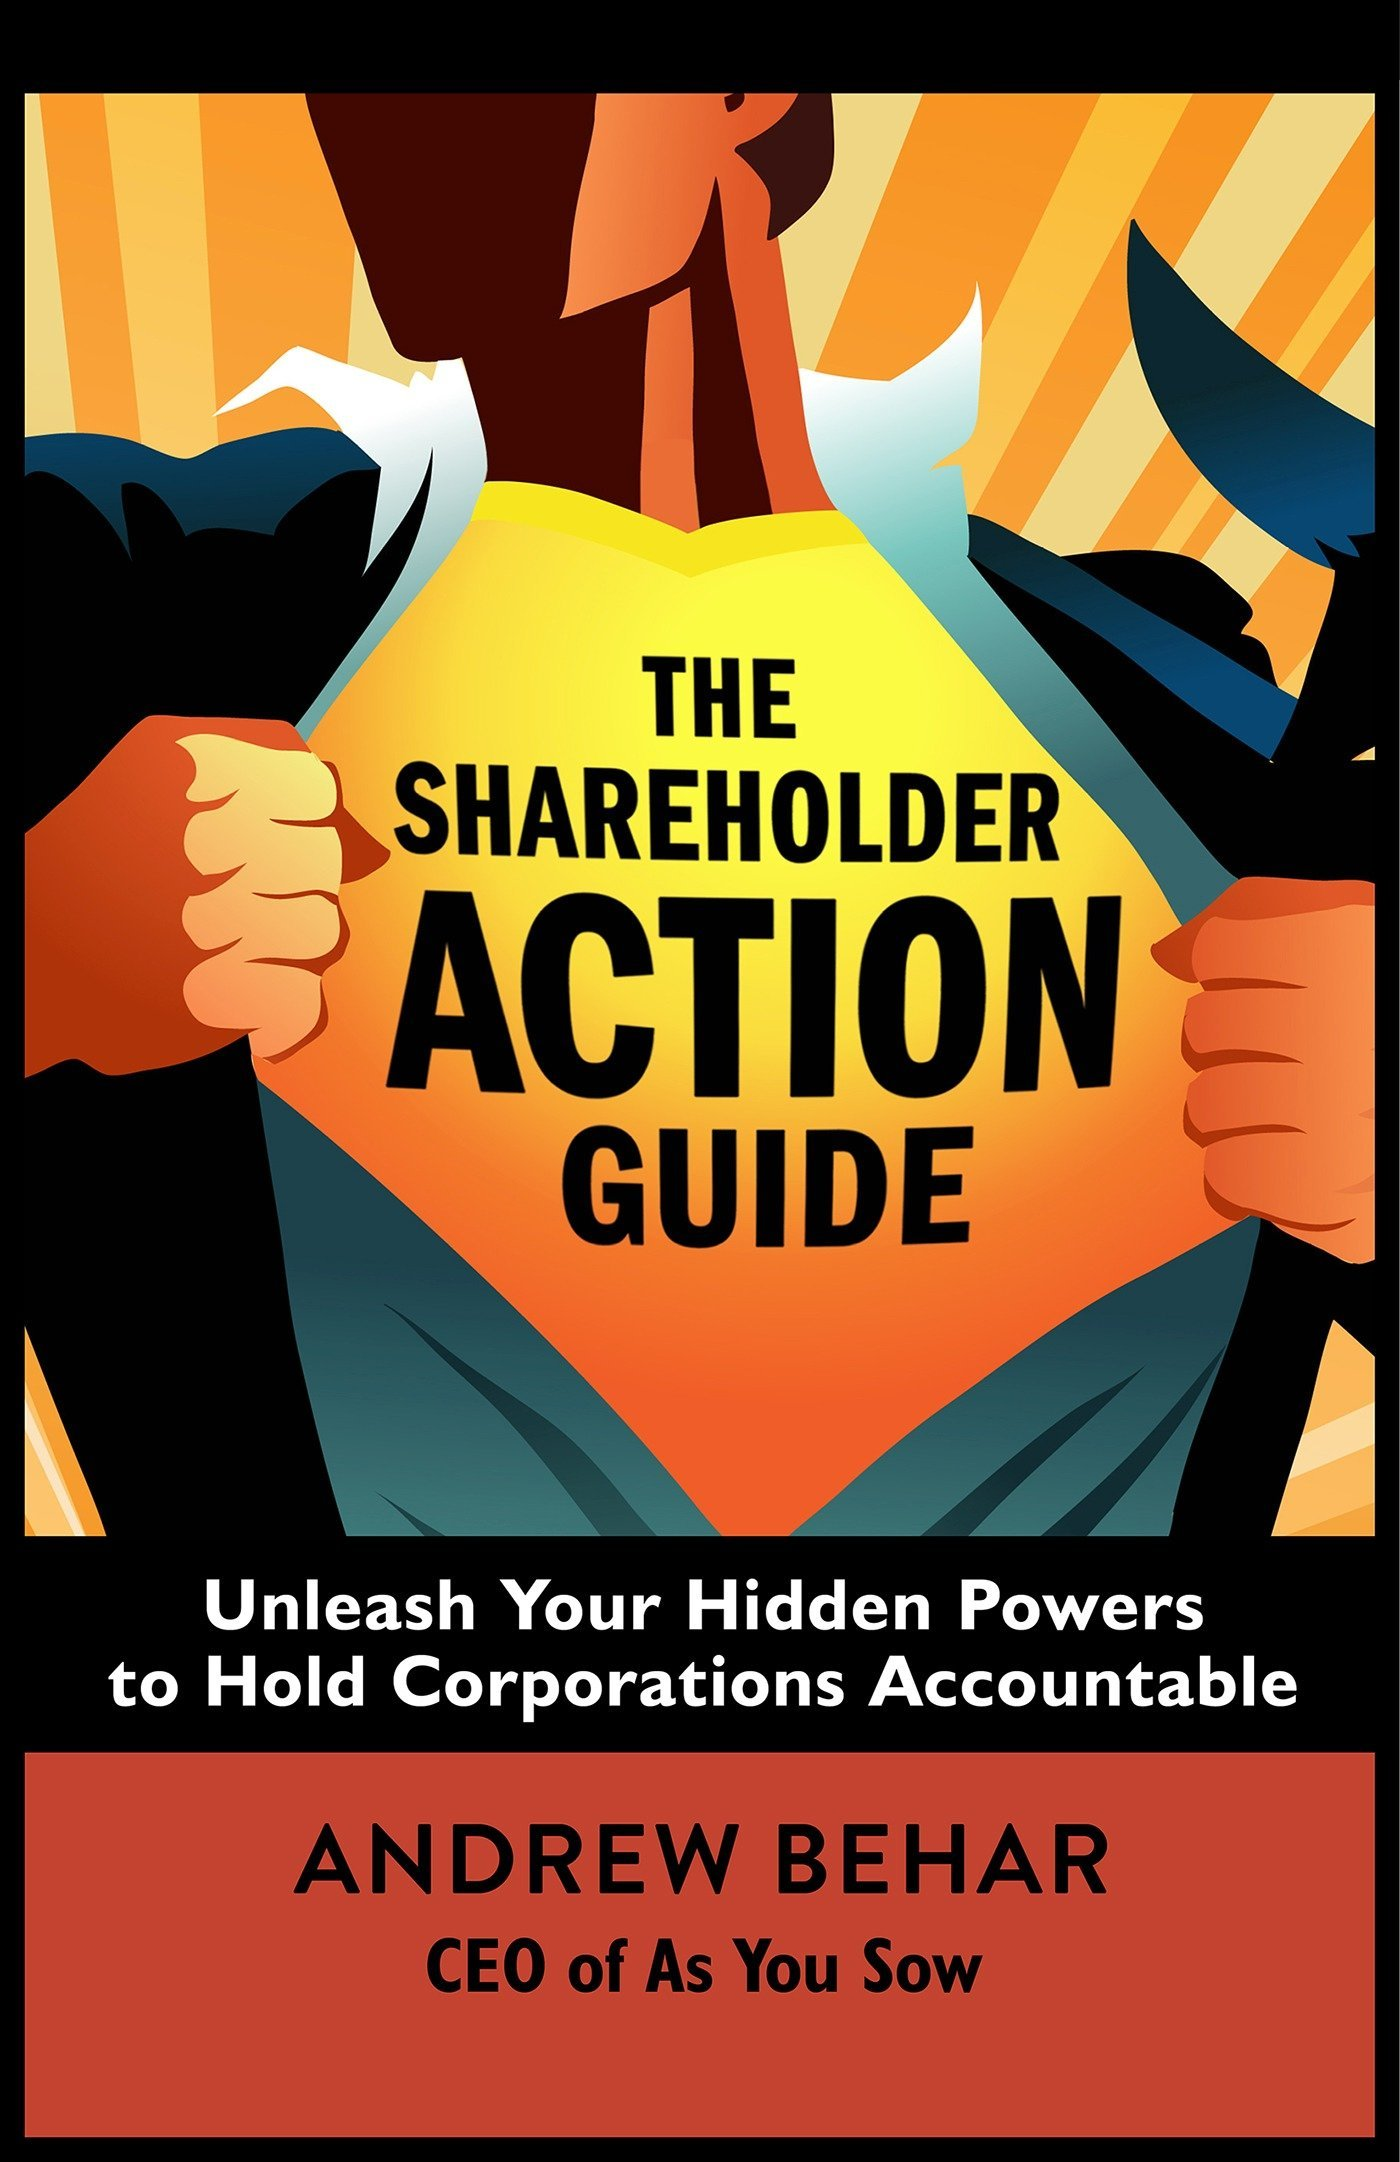 The Shareholder Action Guide: Unleash Your Hidden Powers to Hold Corporations Accountable